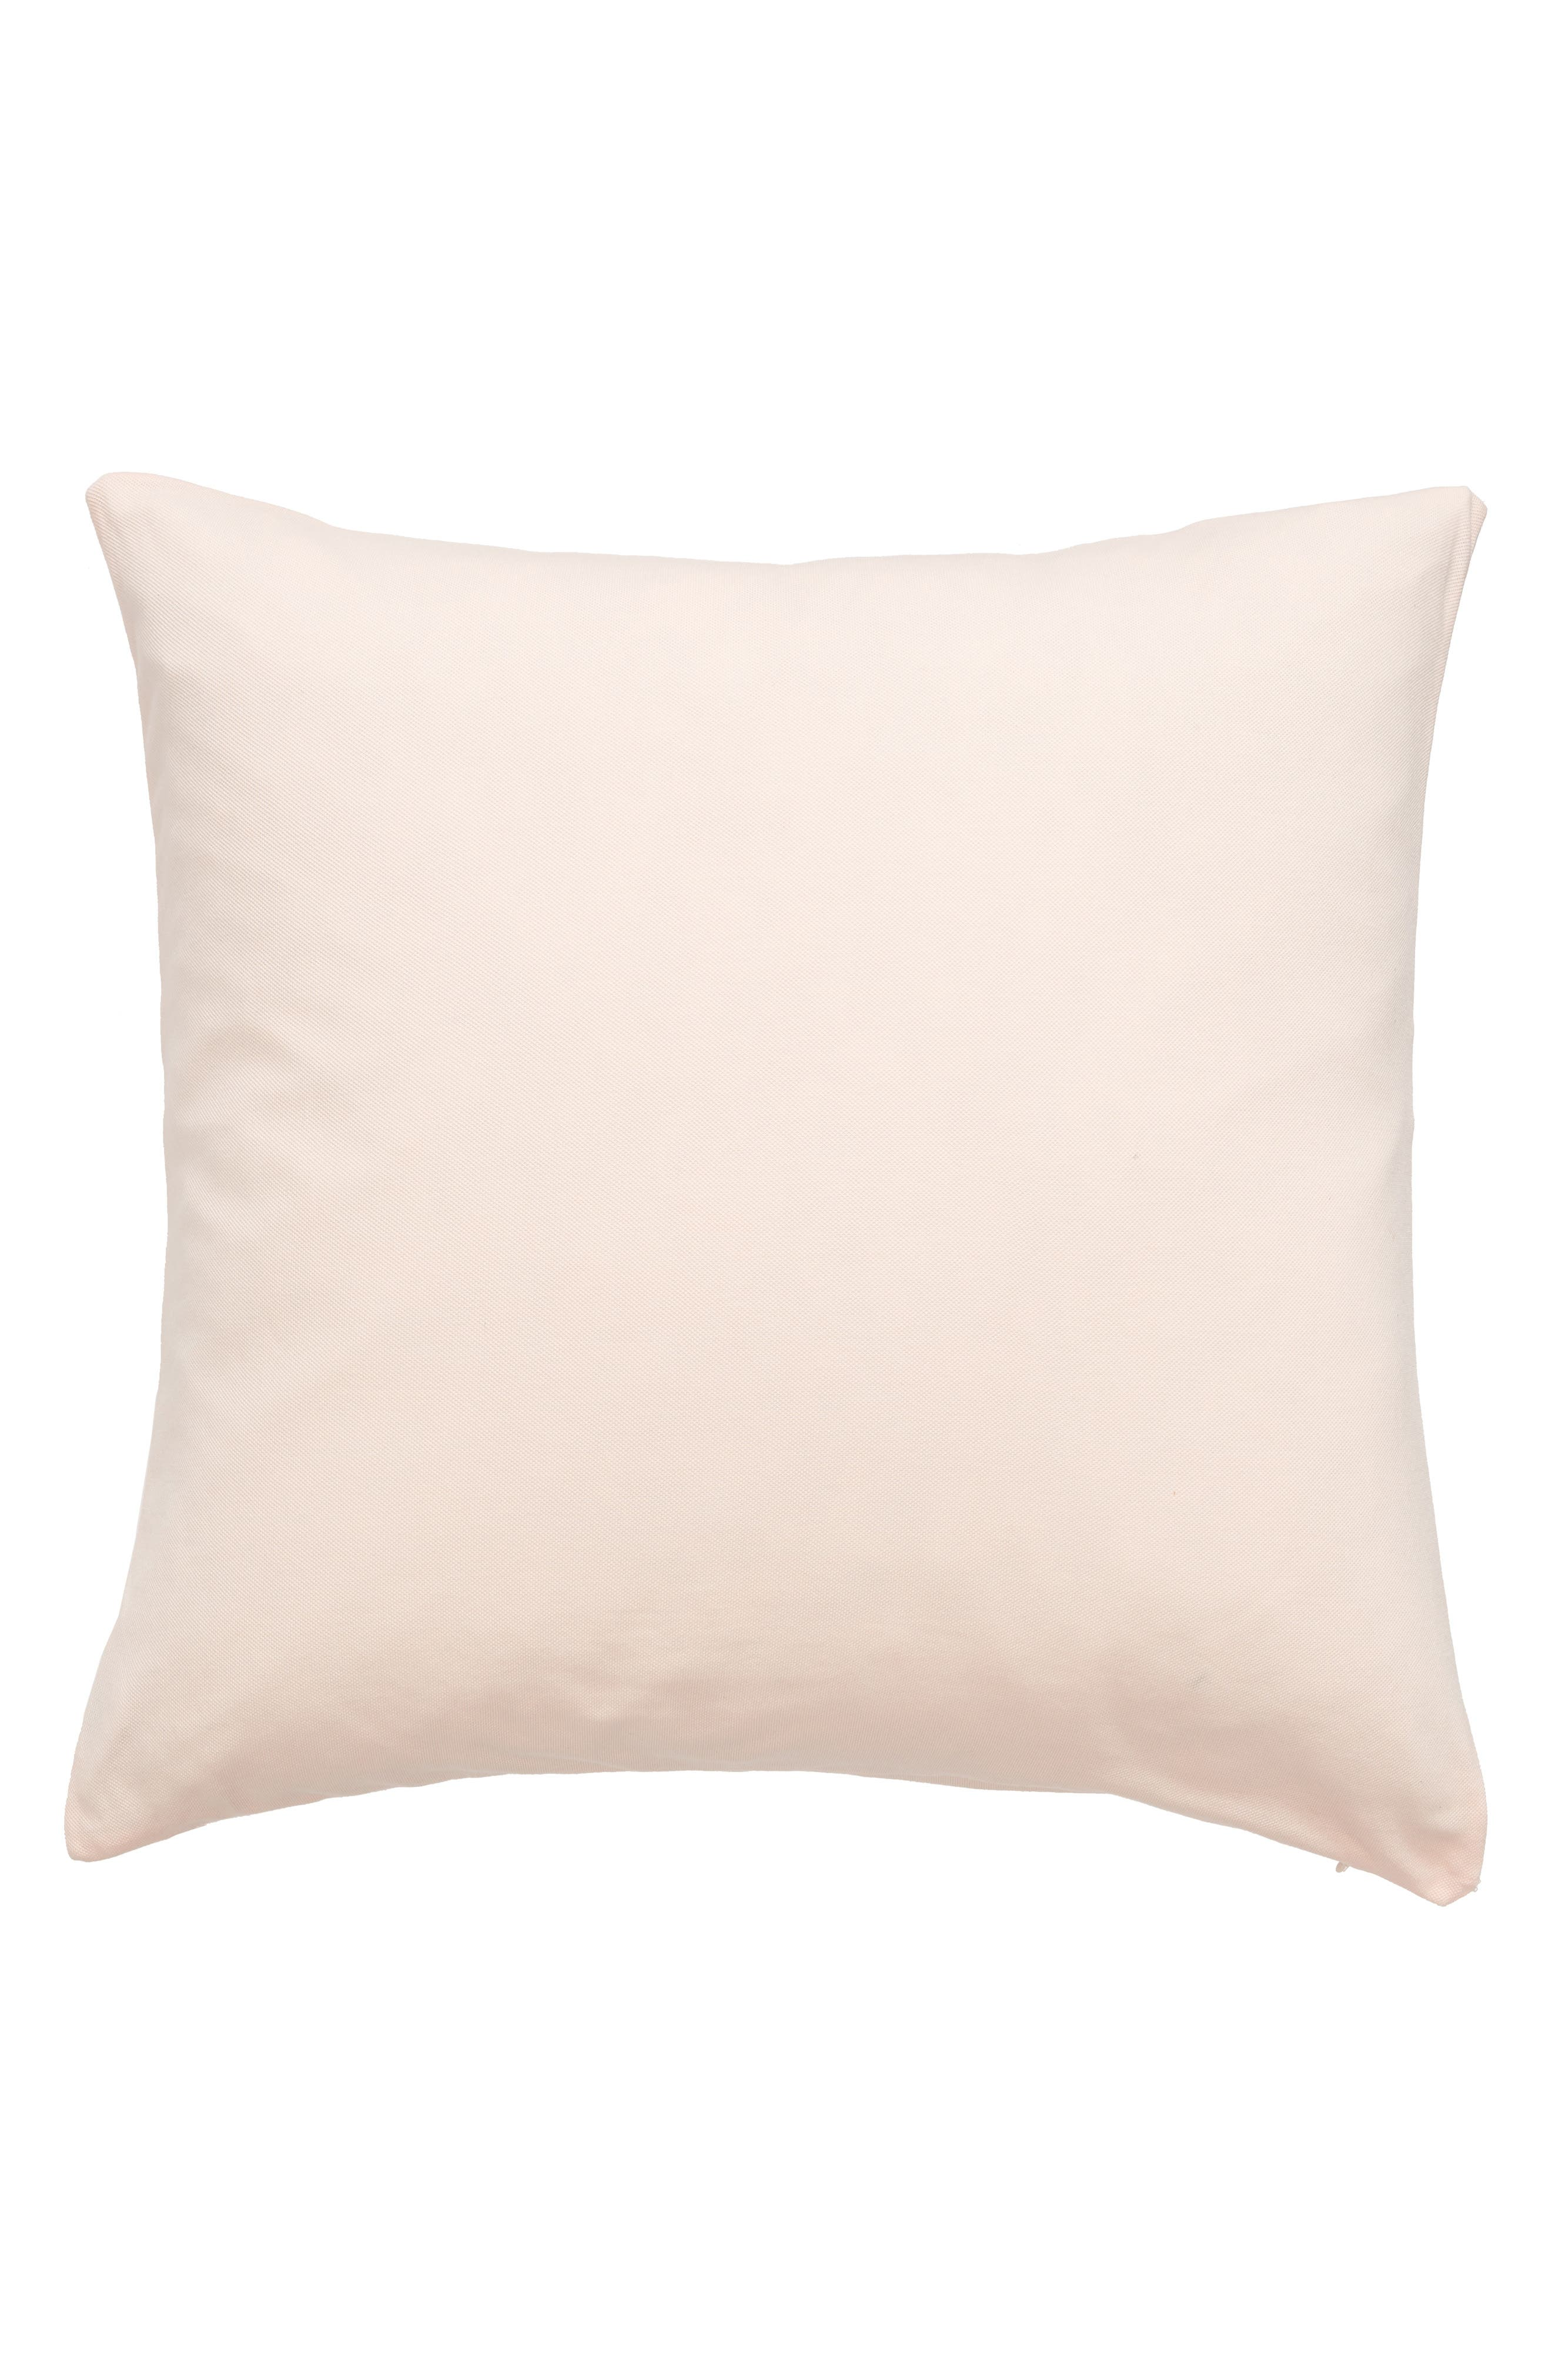 Home Jacob Accent Pillow,                             Main thumbnail 1, color,                             Pink